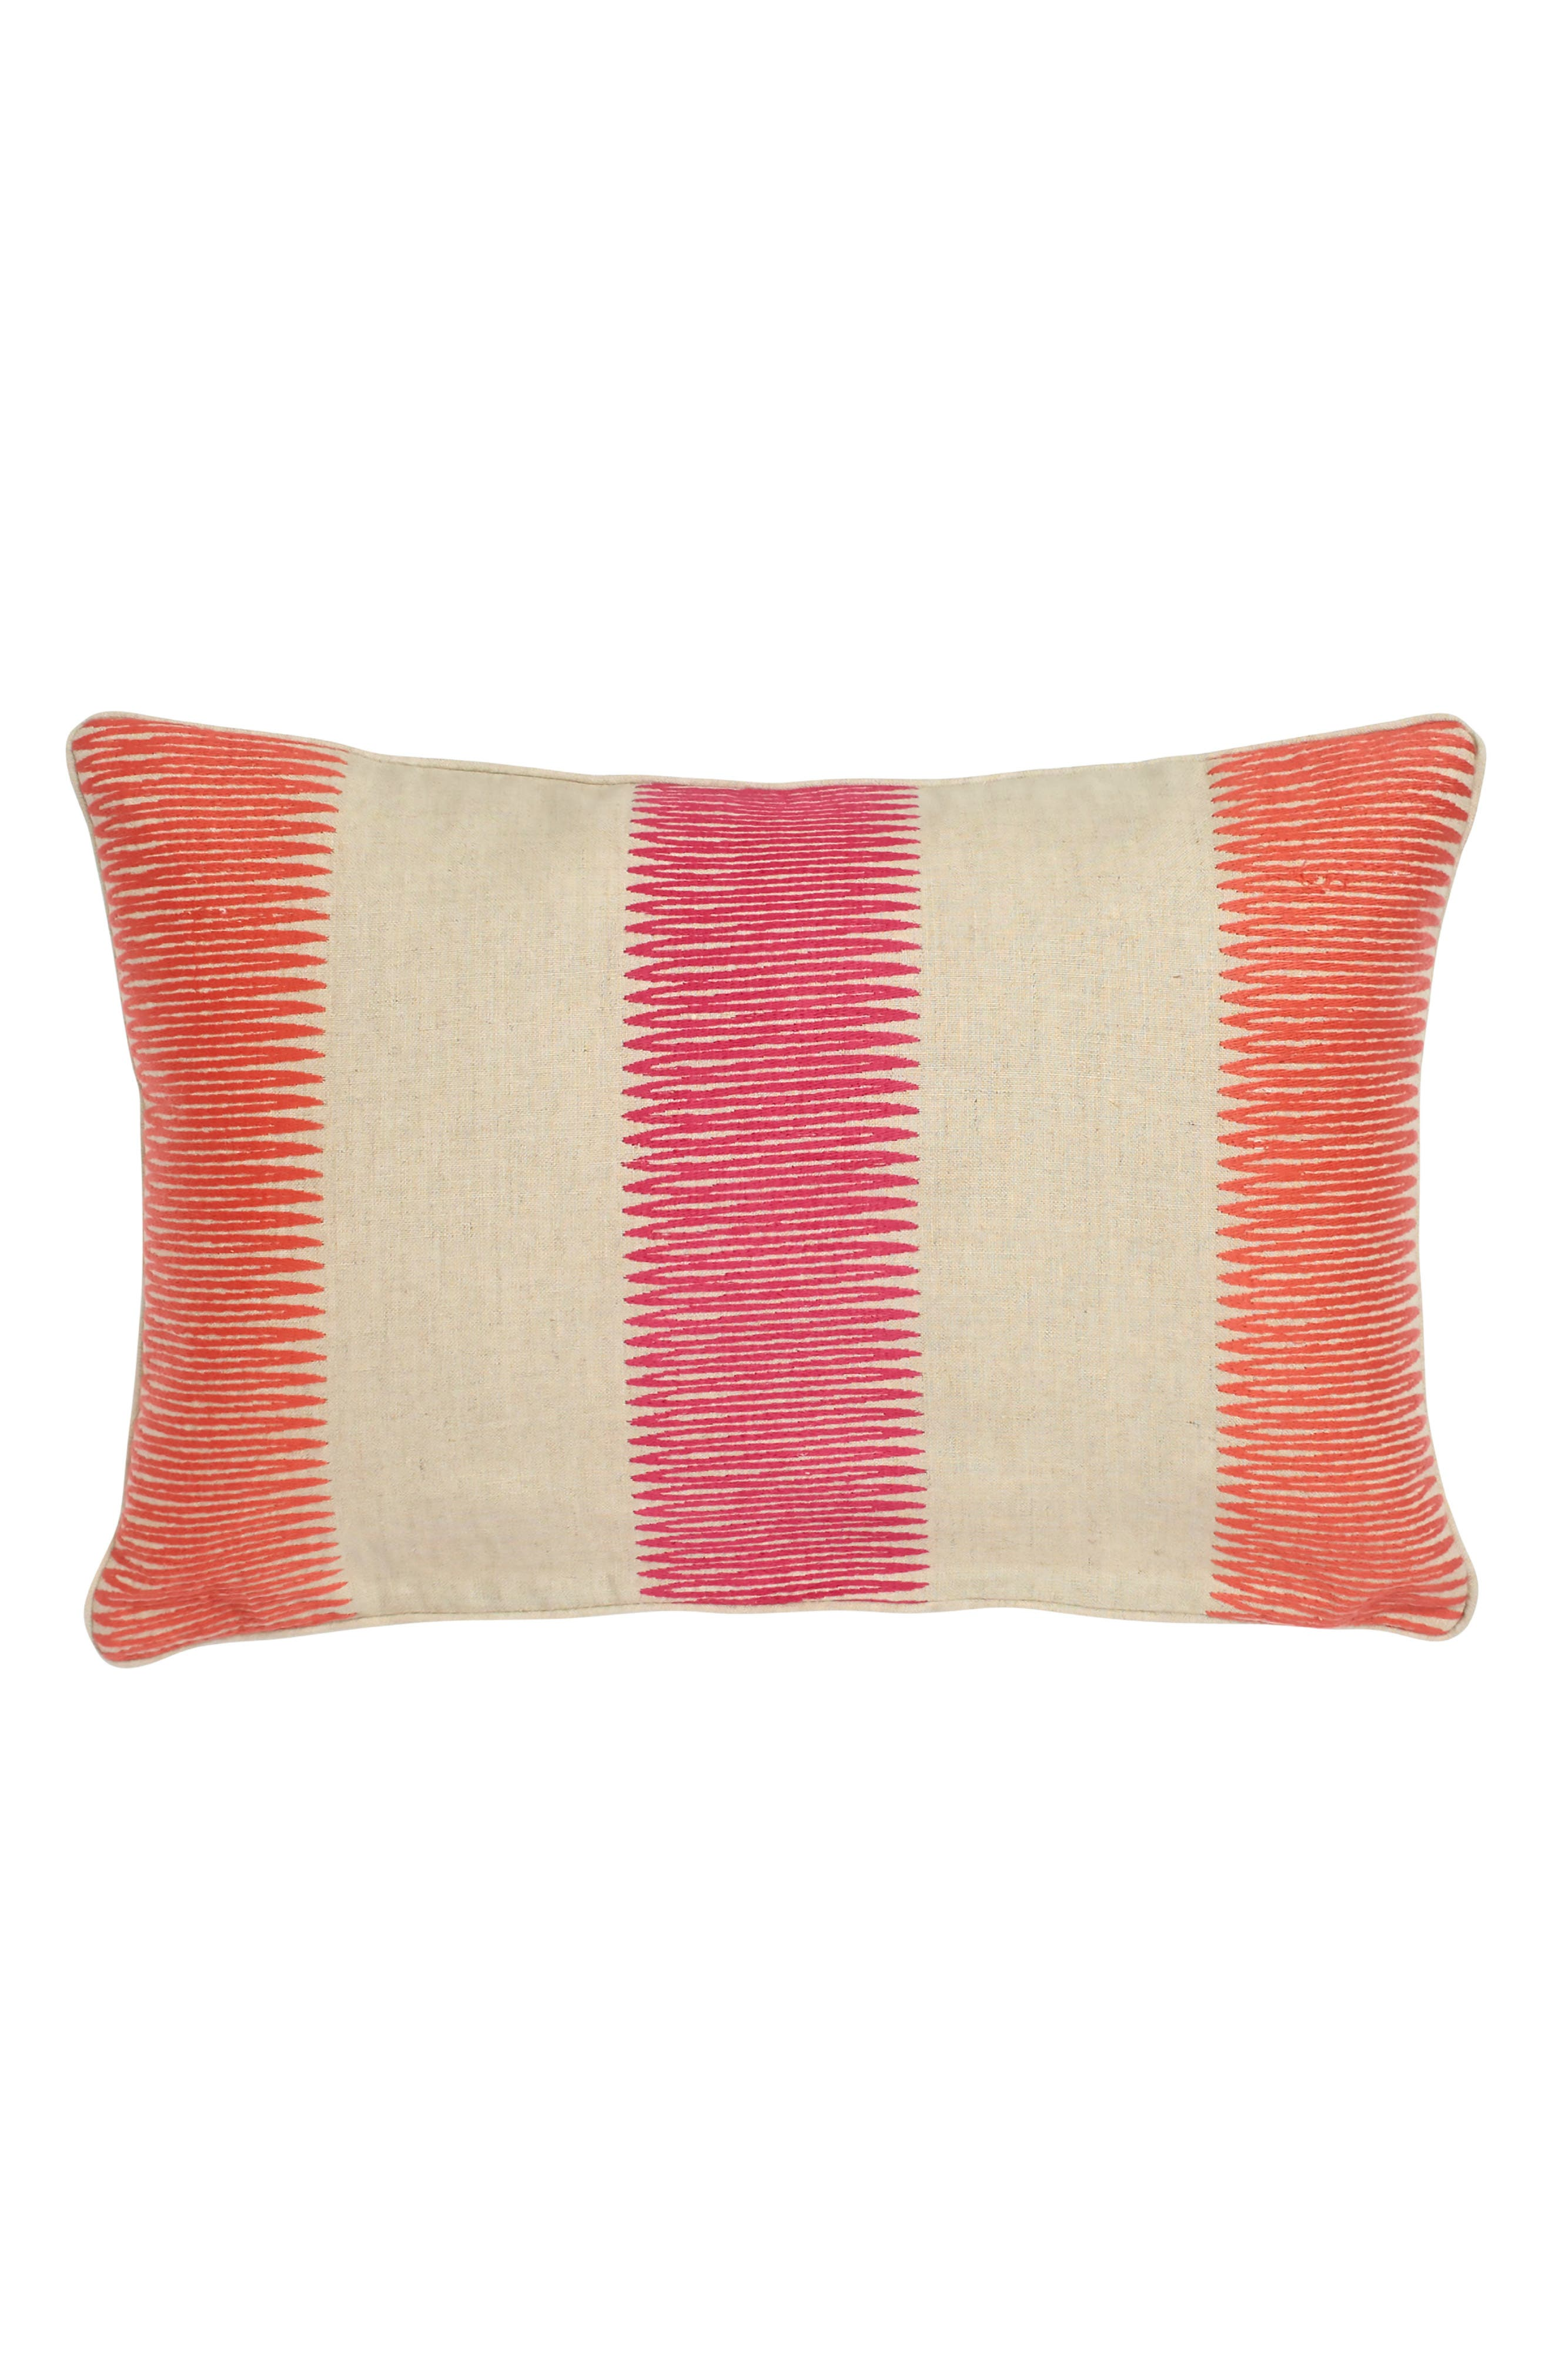 Harlequin Amazilia Accent Pillow